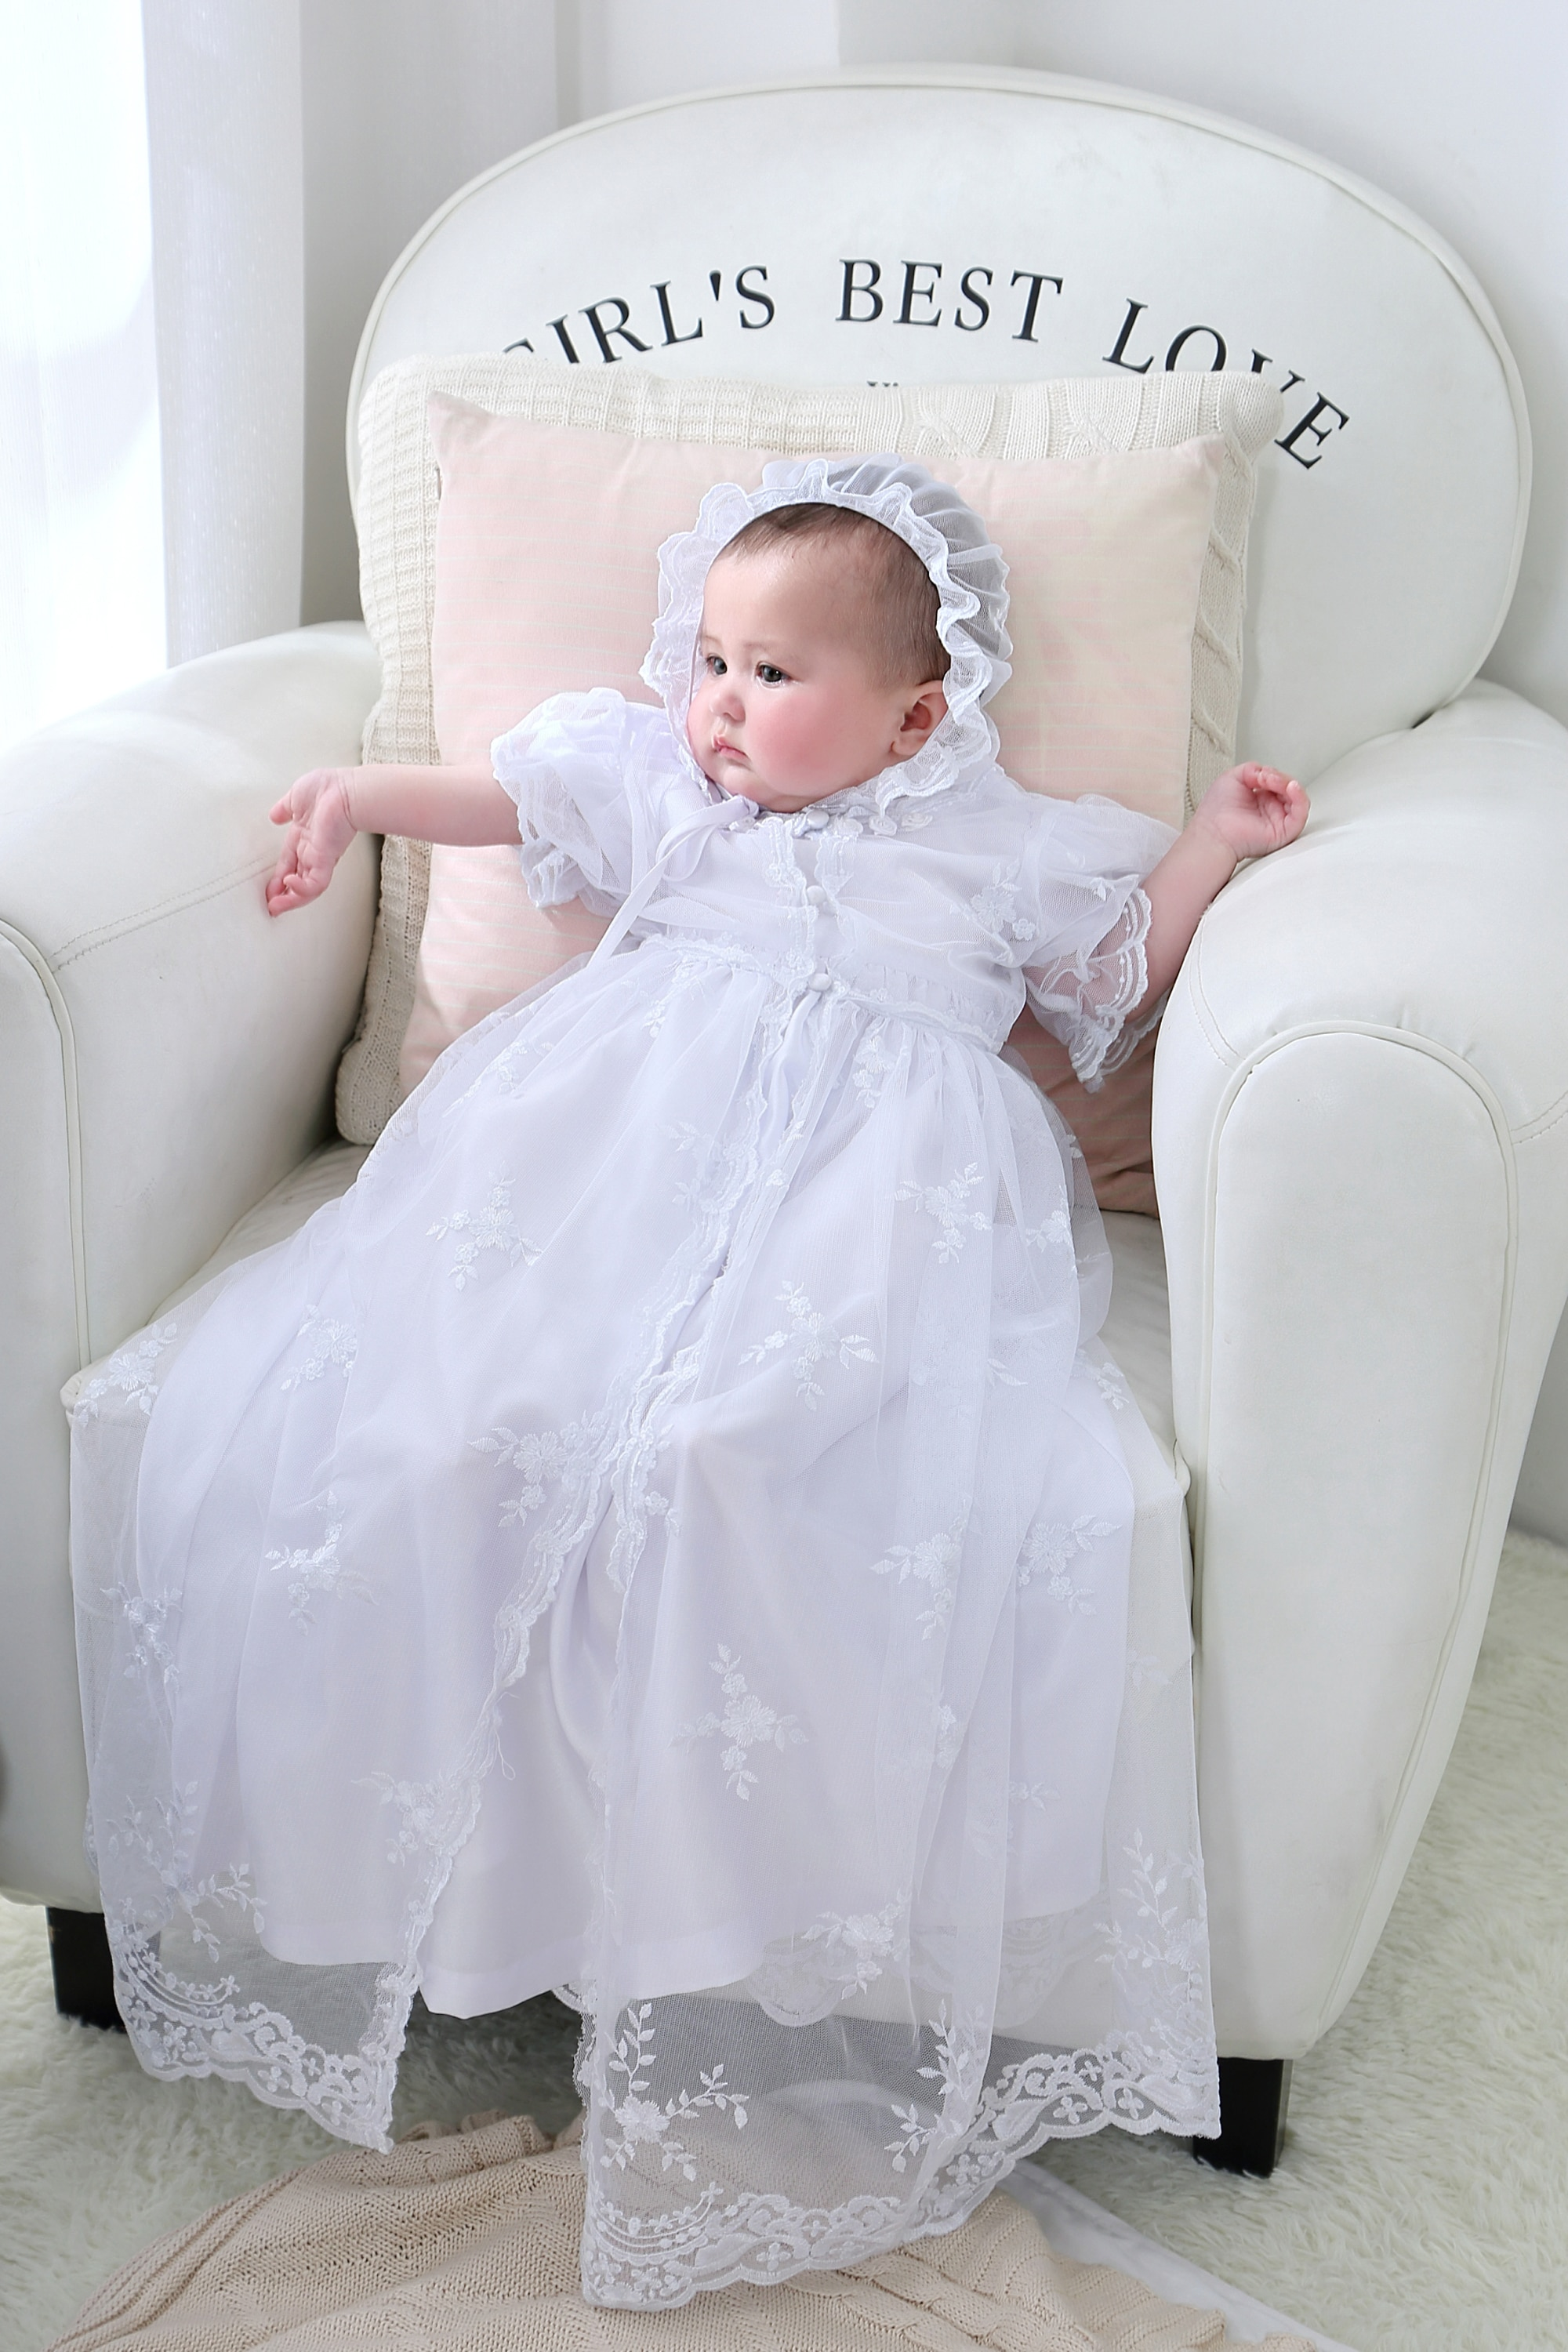 Nimble Newborns Clothes Baby Girl Dress Three Pieces White Lace Embroidered Baptismal Floor-Length Christening Gowns